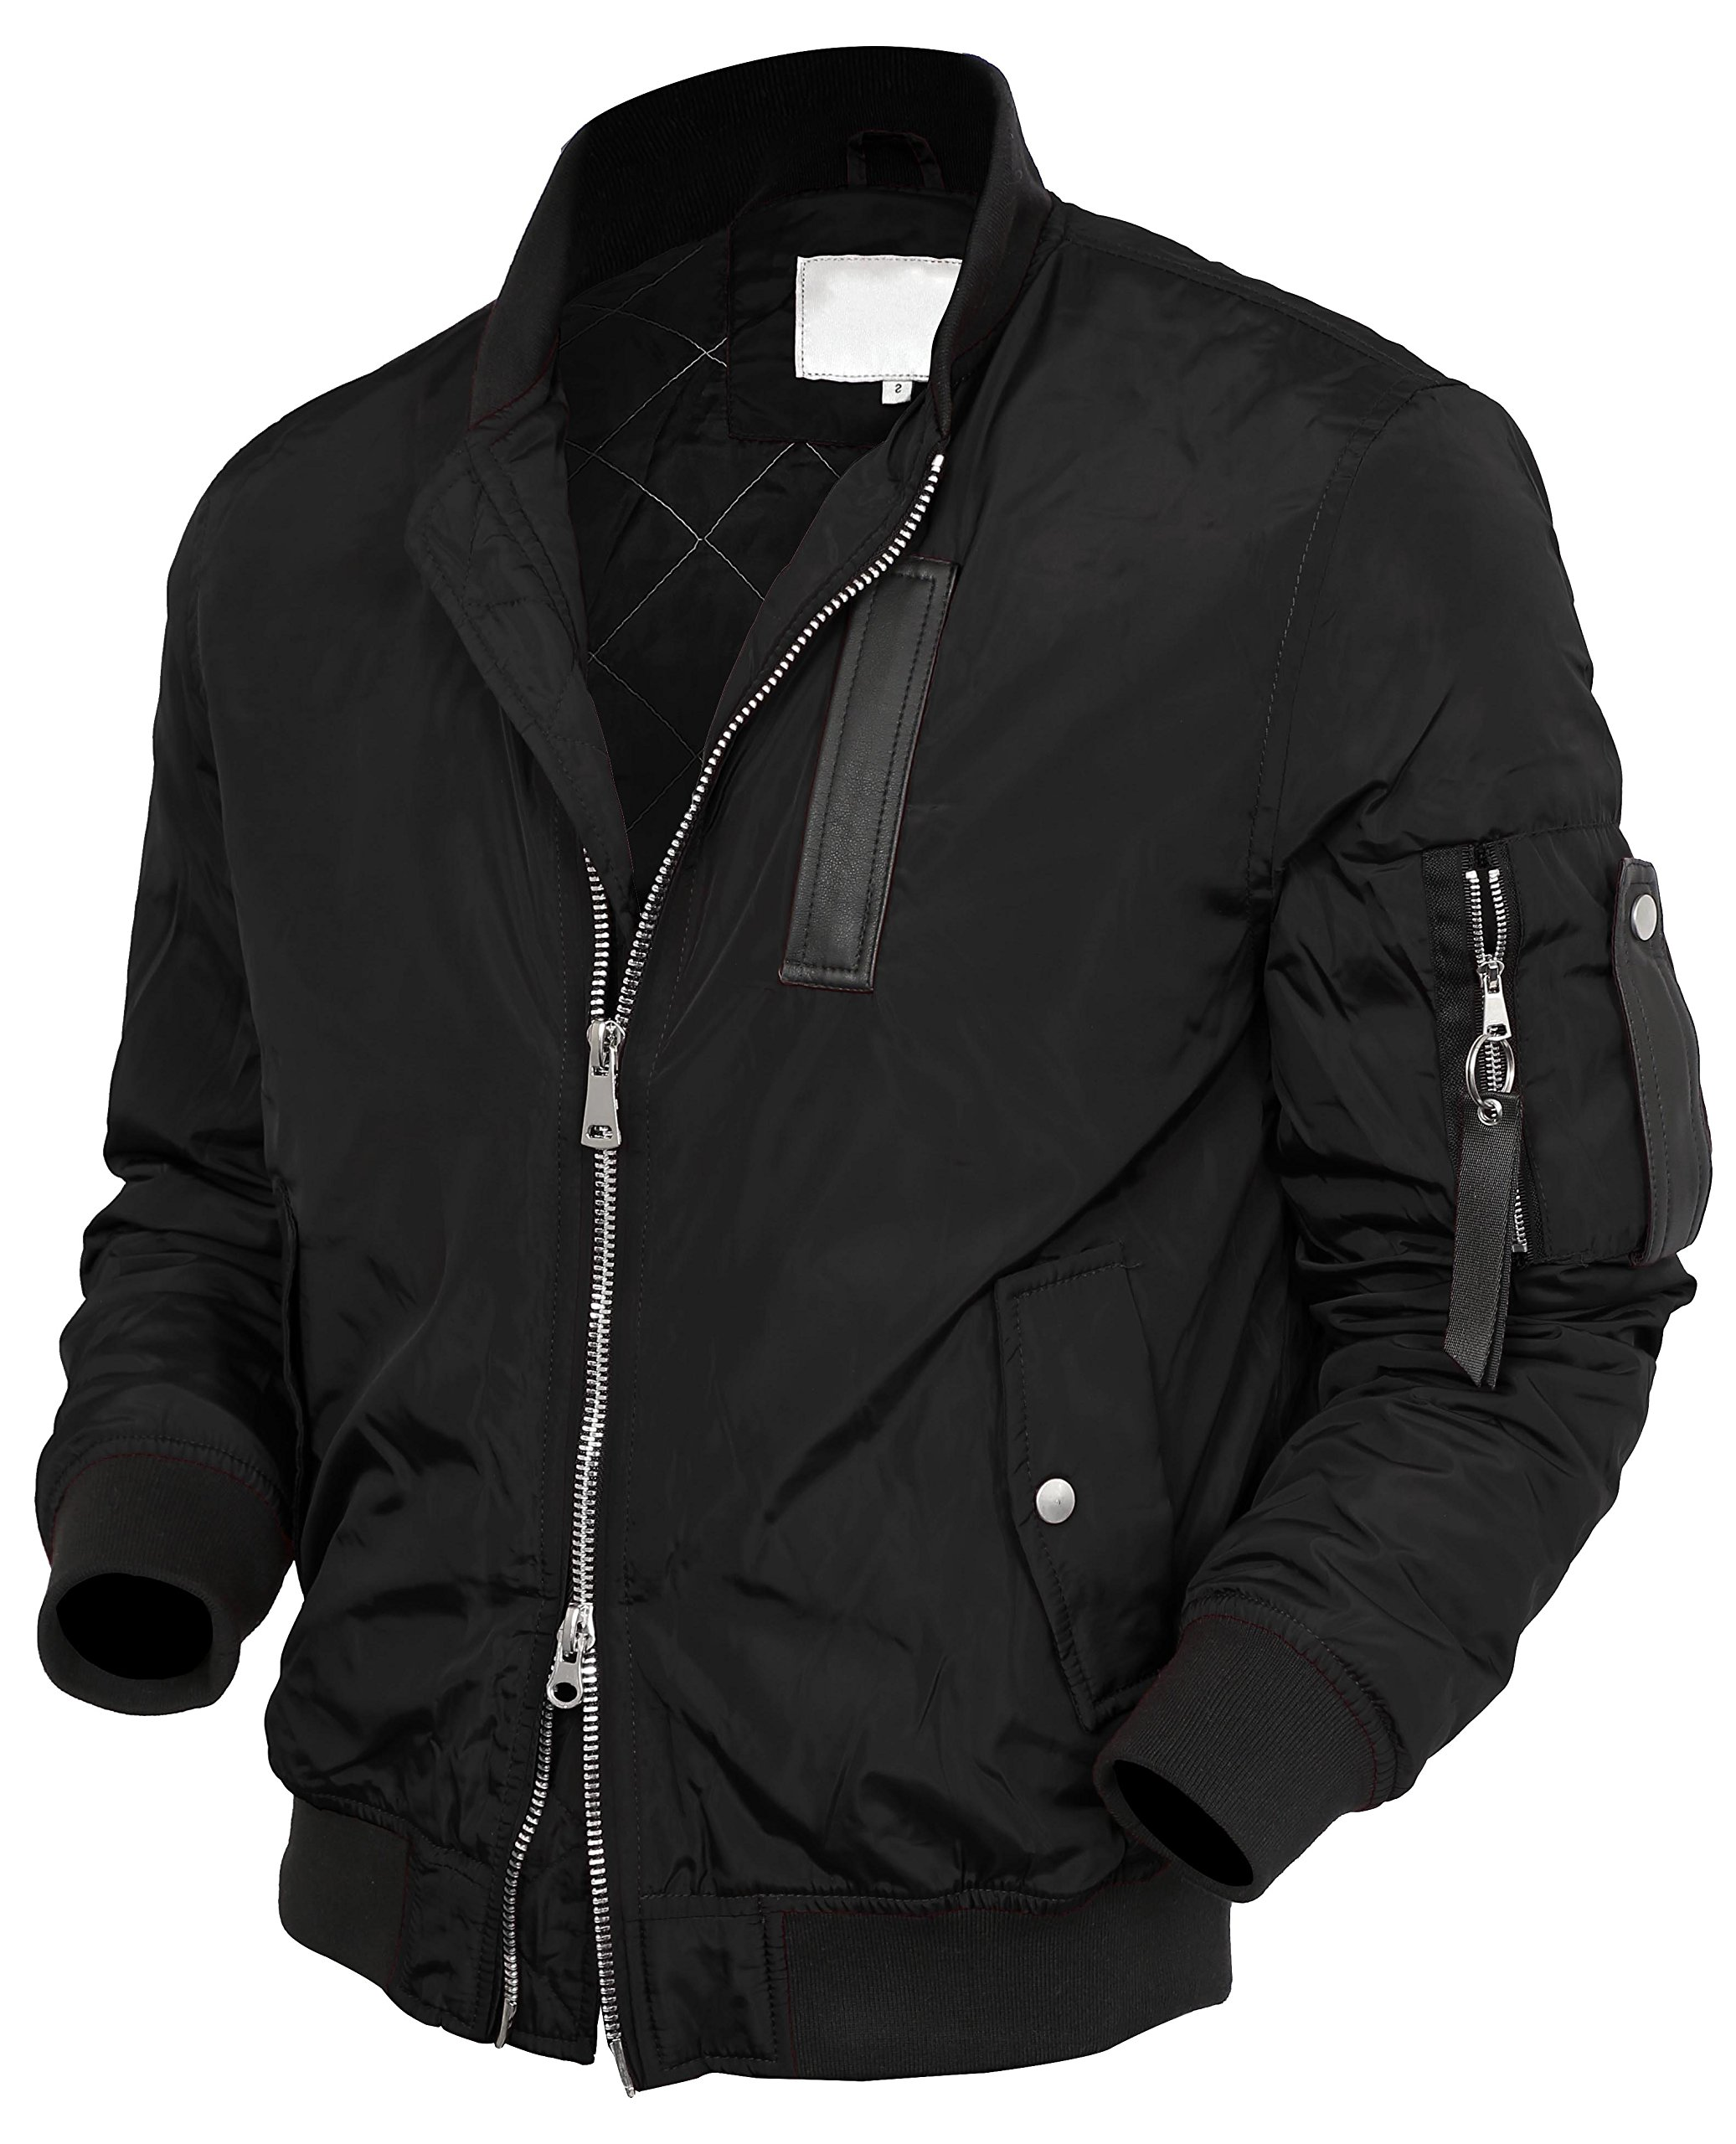 VW Mens Bomber Jacket Active MA-1 Slim Fit Lightweight Windbreaker 6016 (X-Large, 2012 Black)